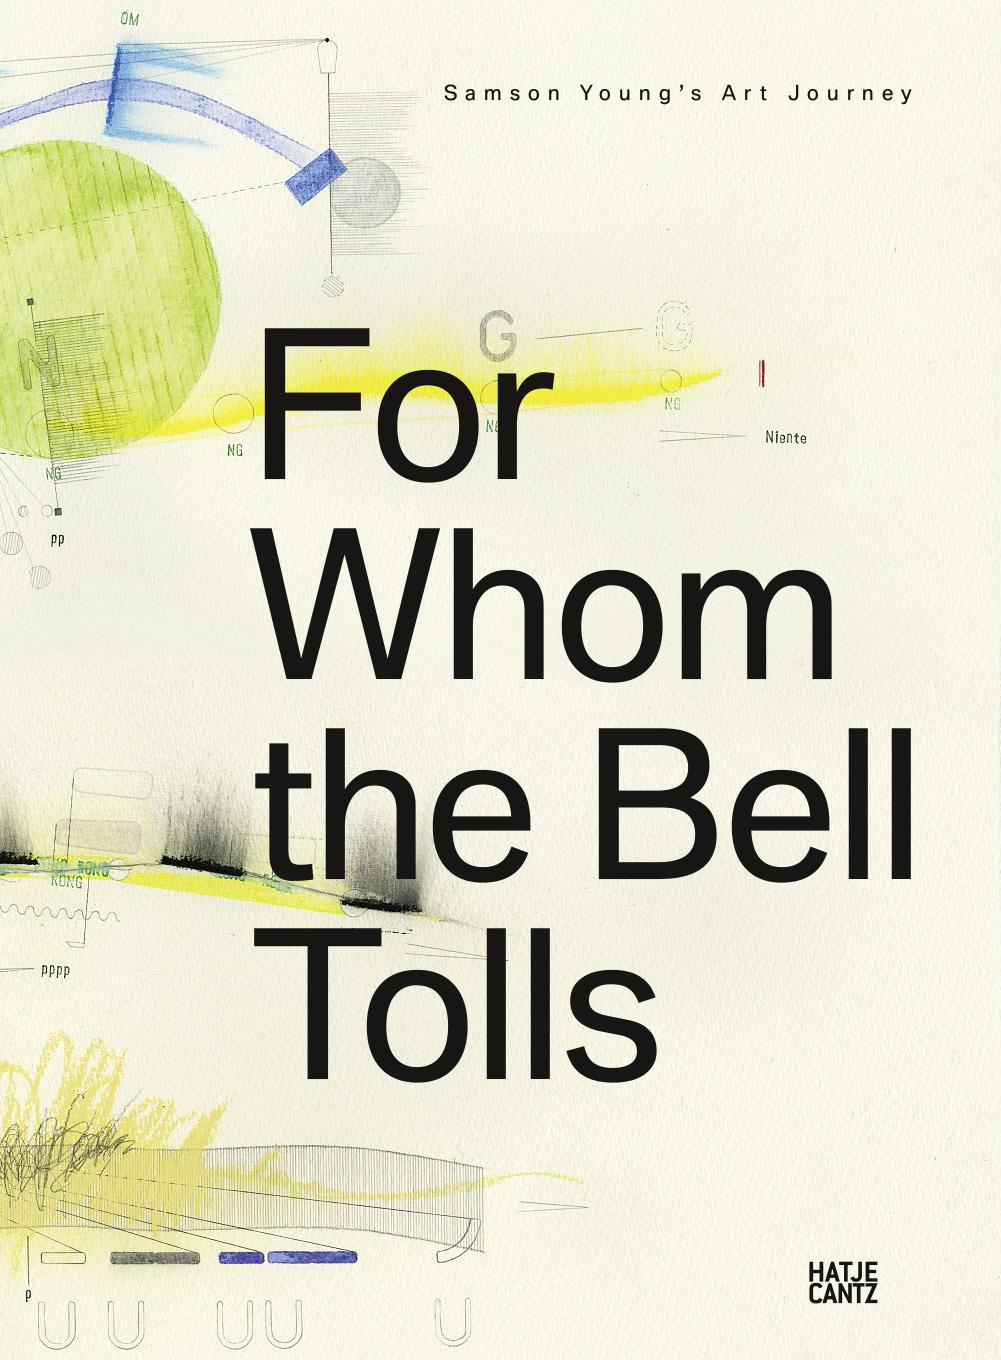 For Whom the Bell Tolls: Samson Young's Art Journey - Andras Szanto, BMW Group Munich, eds. Berlin: Hatje Cantz, 2016. With texts by Andras Szanto, Samson Young.PURCHASE HERE